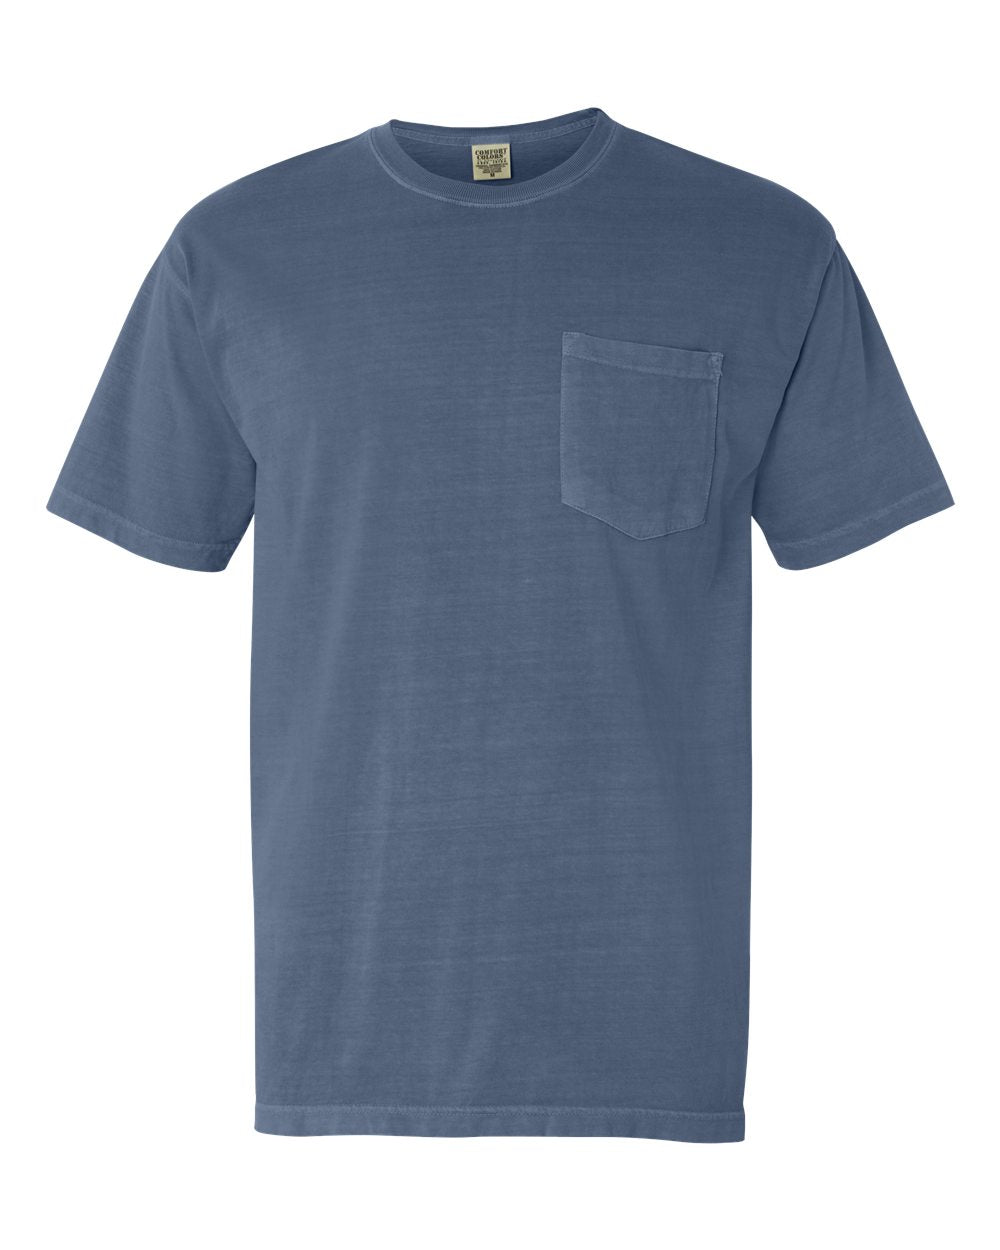 35f9ced9 Comfort Colors Pocket Tee – Kelly Tracy Apparel & Design